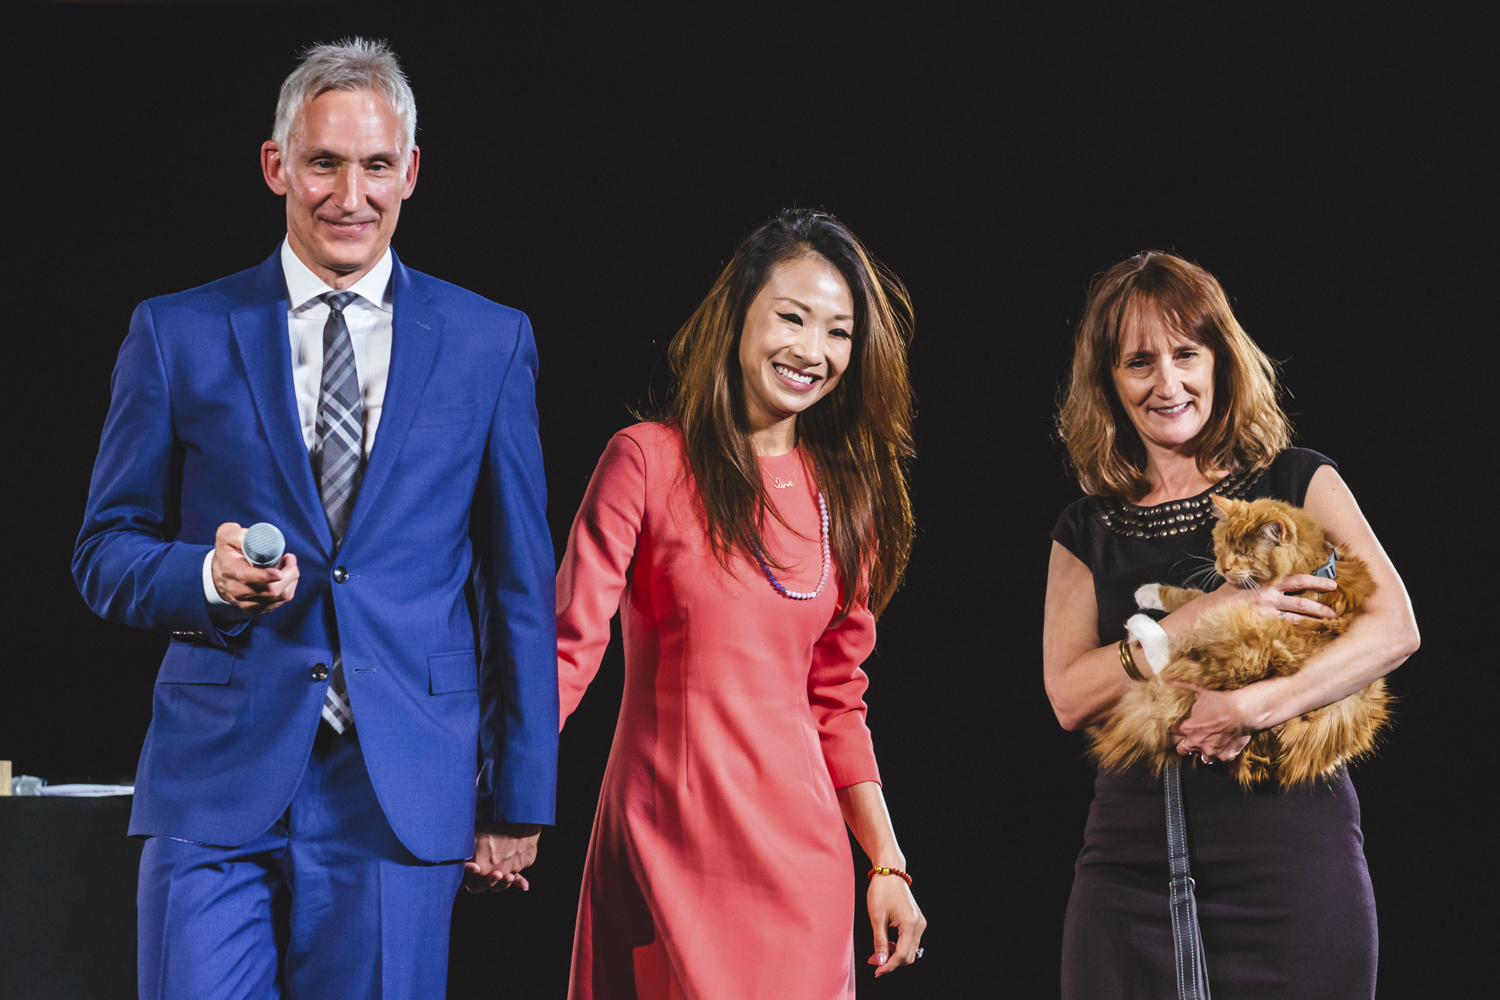 The 2018 annual Tuxes and Tails event raised more than $1.85 through donations, auctions, raffles and more this weekend (May 13, 2018). Local celebs walked adoptable cats and dogs down the runway at the Meydenbaur Center in Bellevue to a ballroom filled with animal people. All proceeds benefit animals in SHS's care. (Image: Sunita Martini / Seattle Refined)